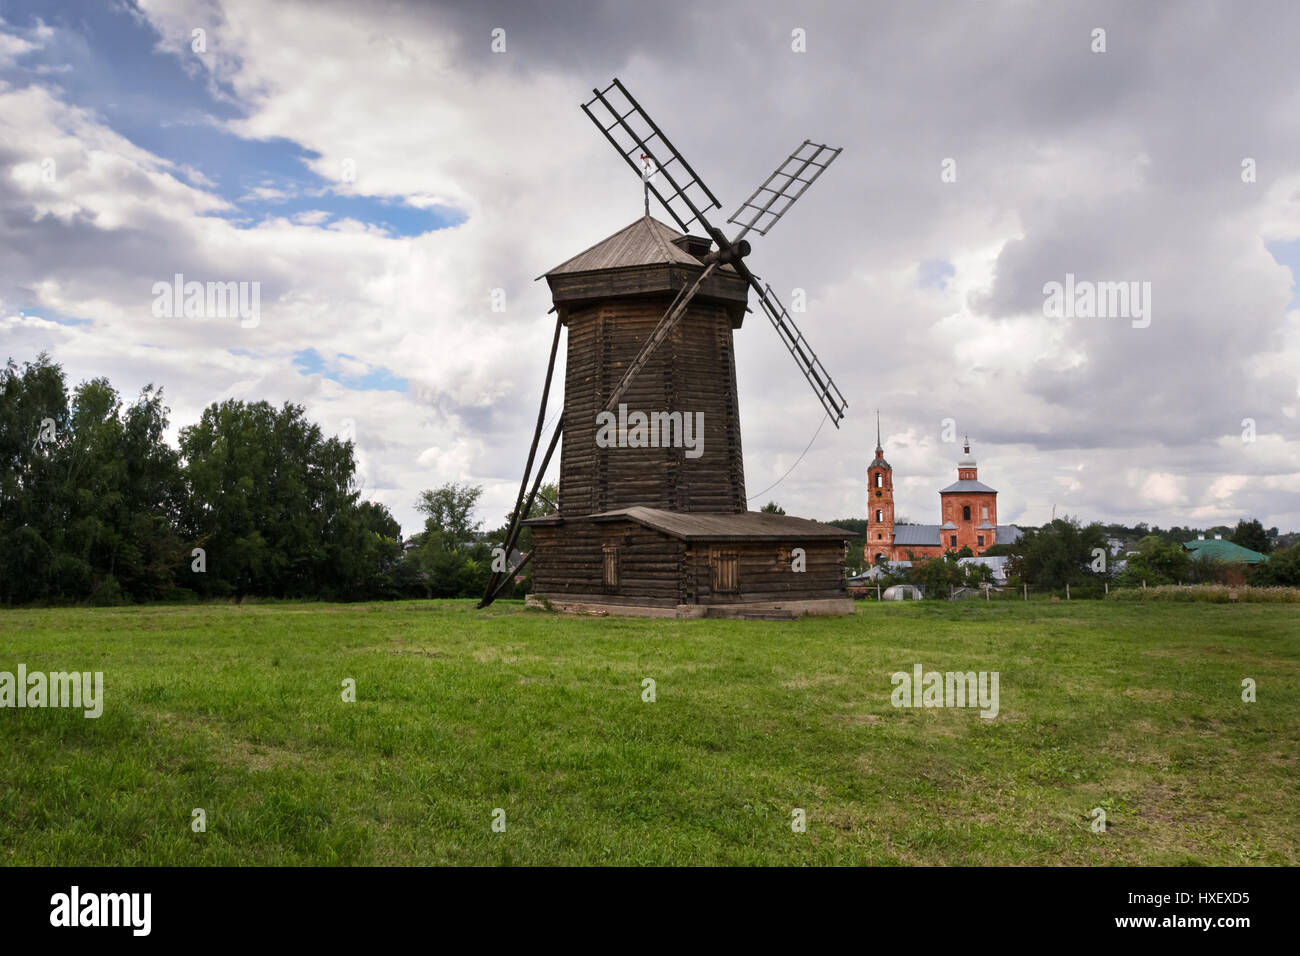 Old wooden windmill in Suzdal - Stock Image